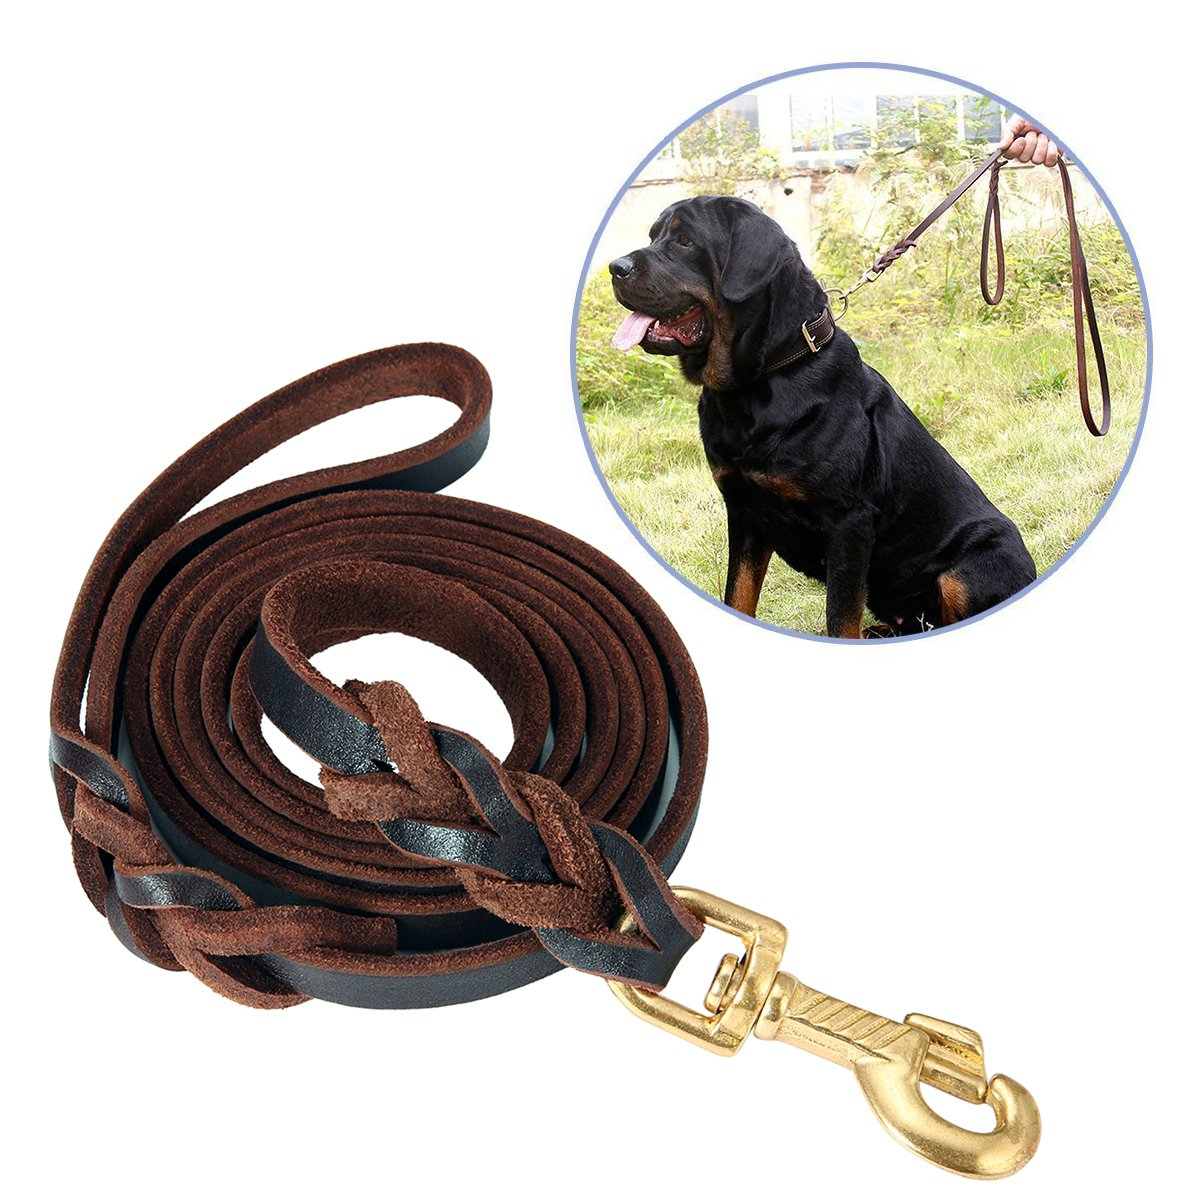 FOCUSPET Leather Dog Leash 6 ft Leather Dog Training Leash Pet Braided Dog Leash for Large Medium Leads Rope Dogs Walking&Training (1/2 Inch,Brown) by FOCUSPET